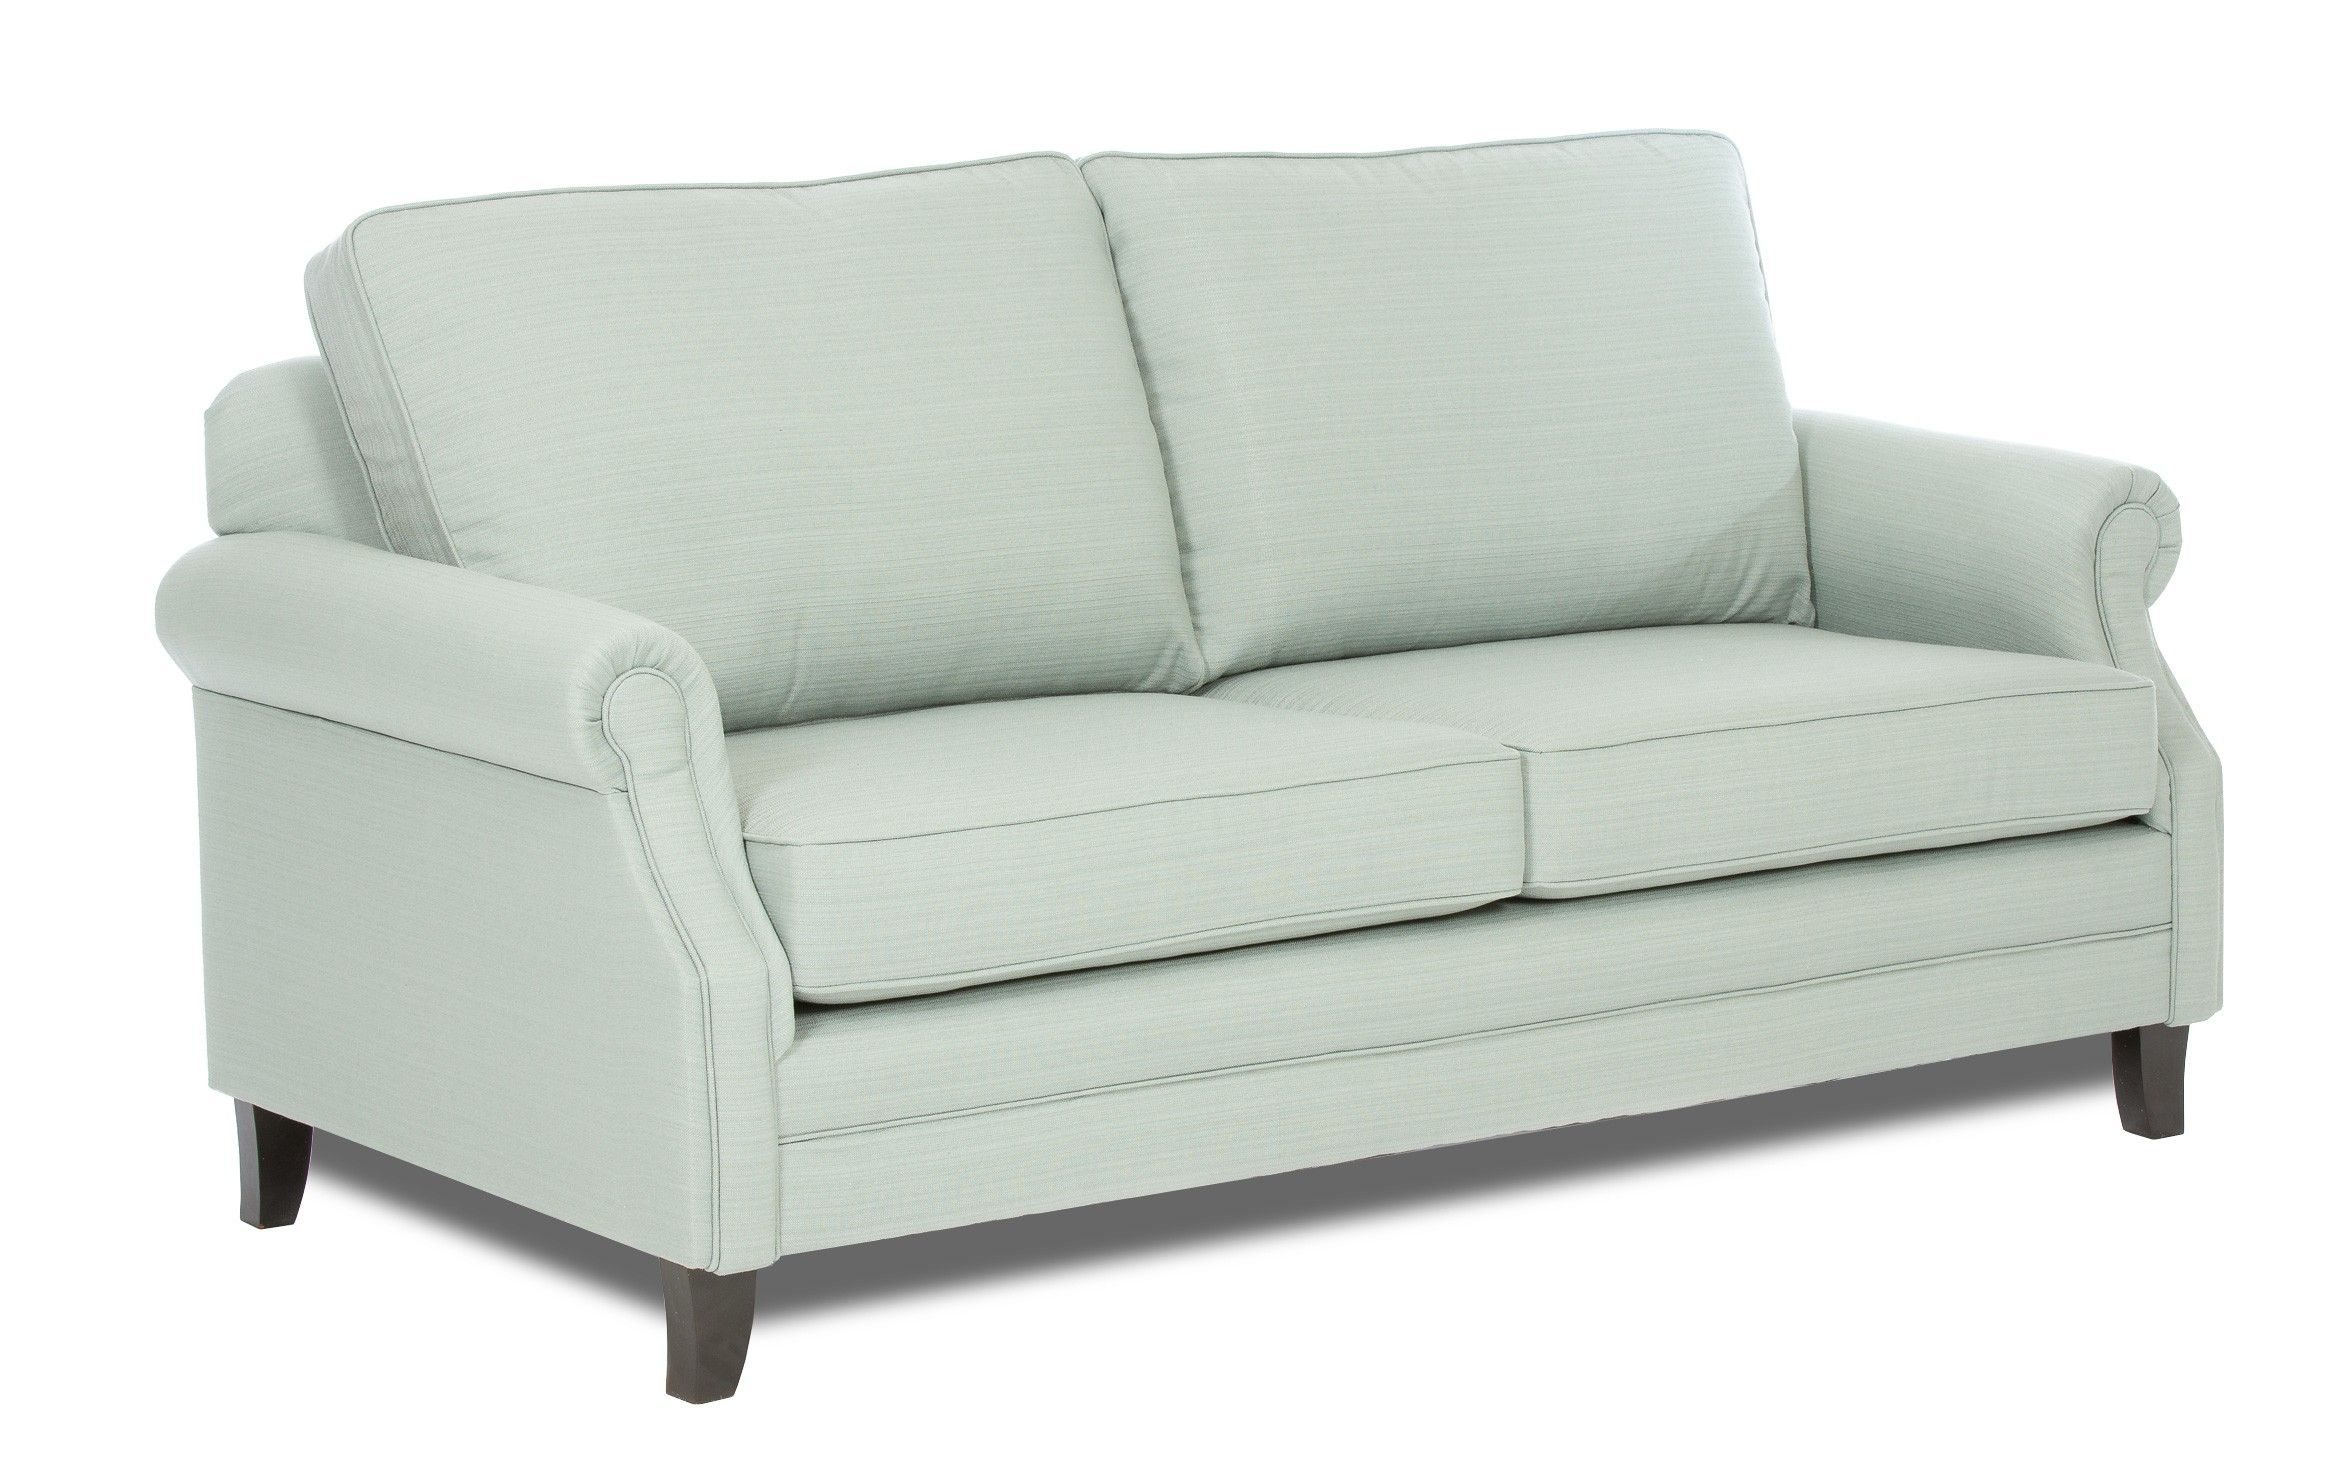 Camile Sofa Bed - Australian Made - Using Dunlop Foam